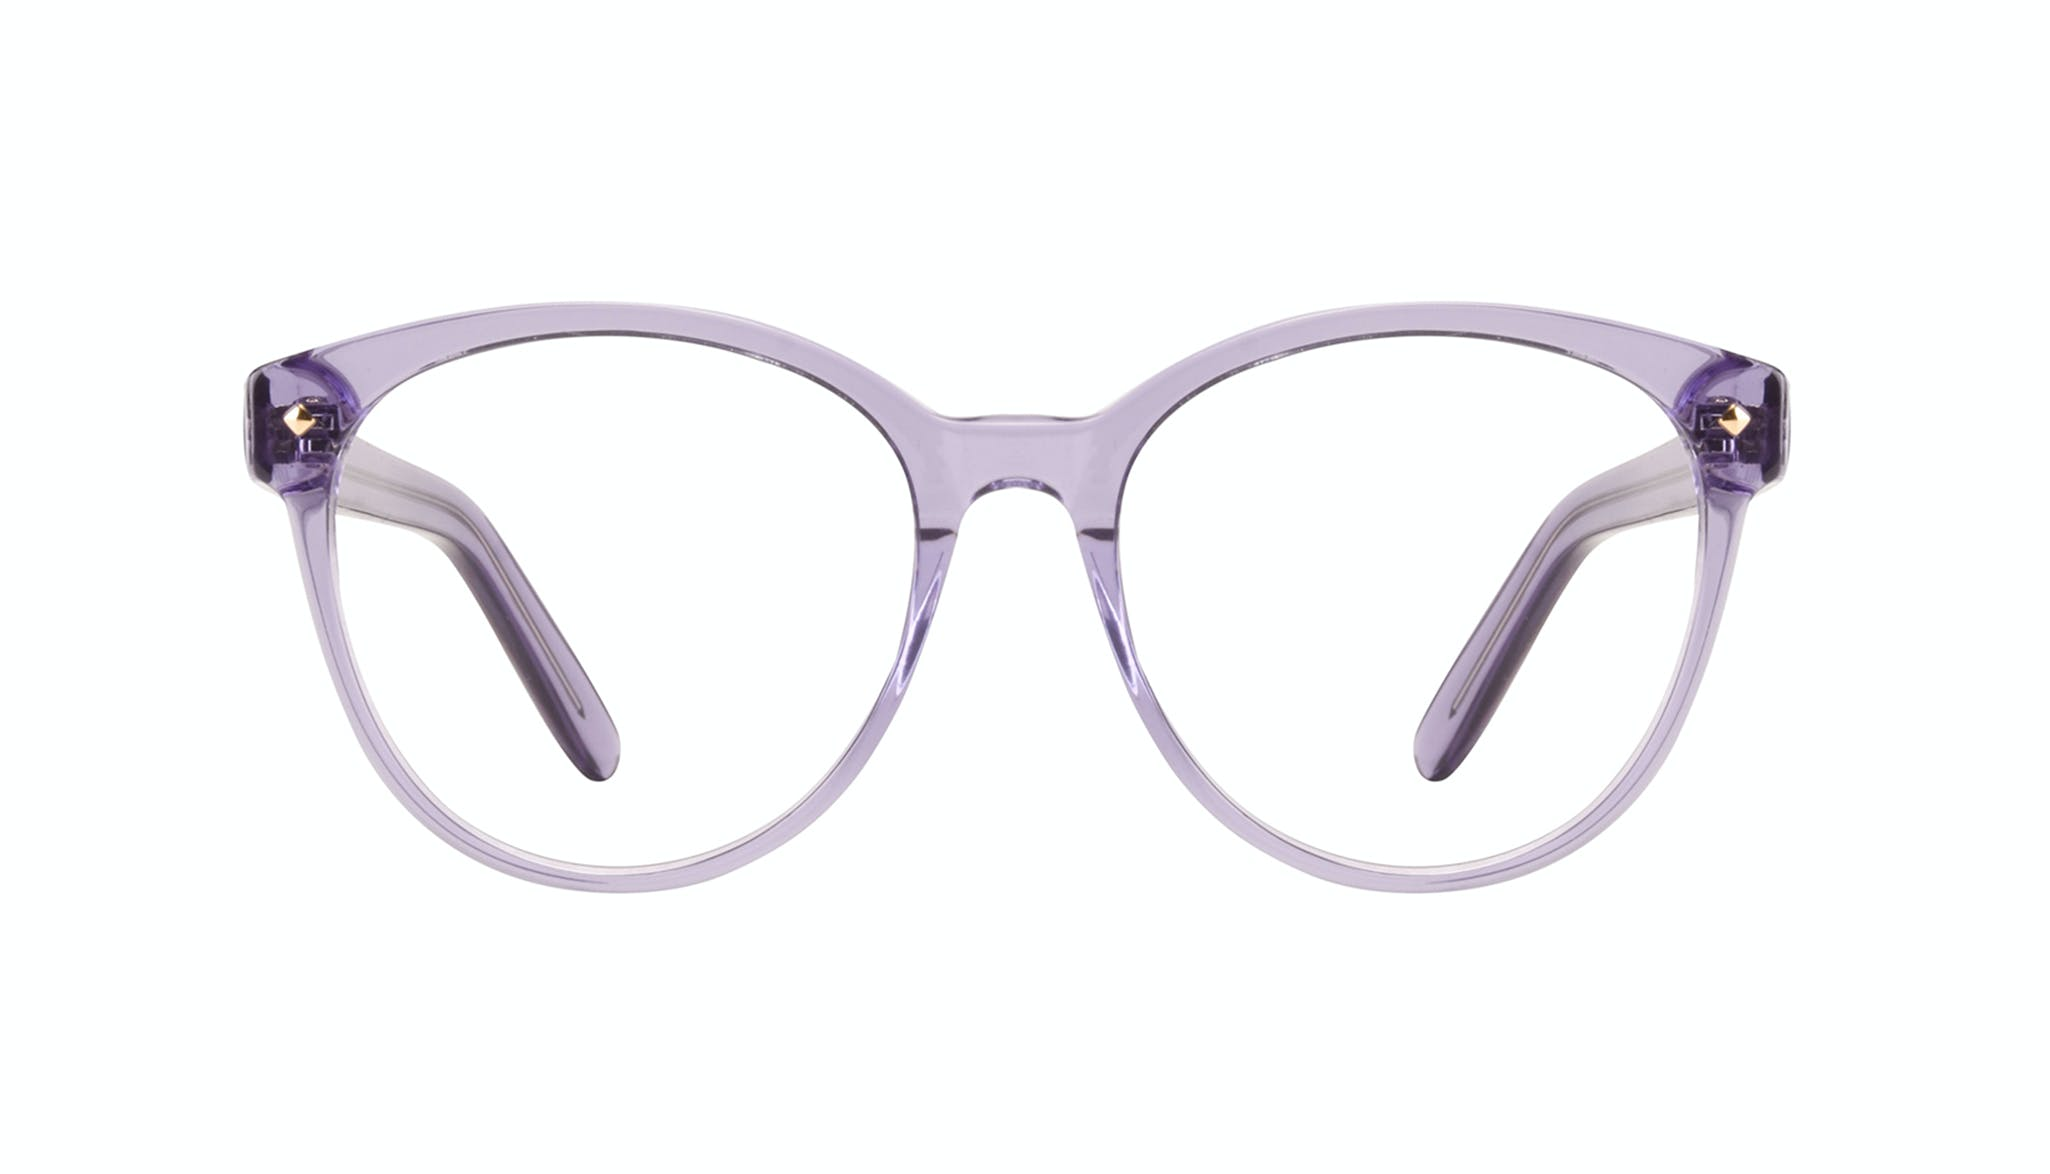 Affordable Fashion Glasses Round Eyeglasses Women Eclipse Lavender